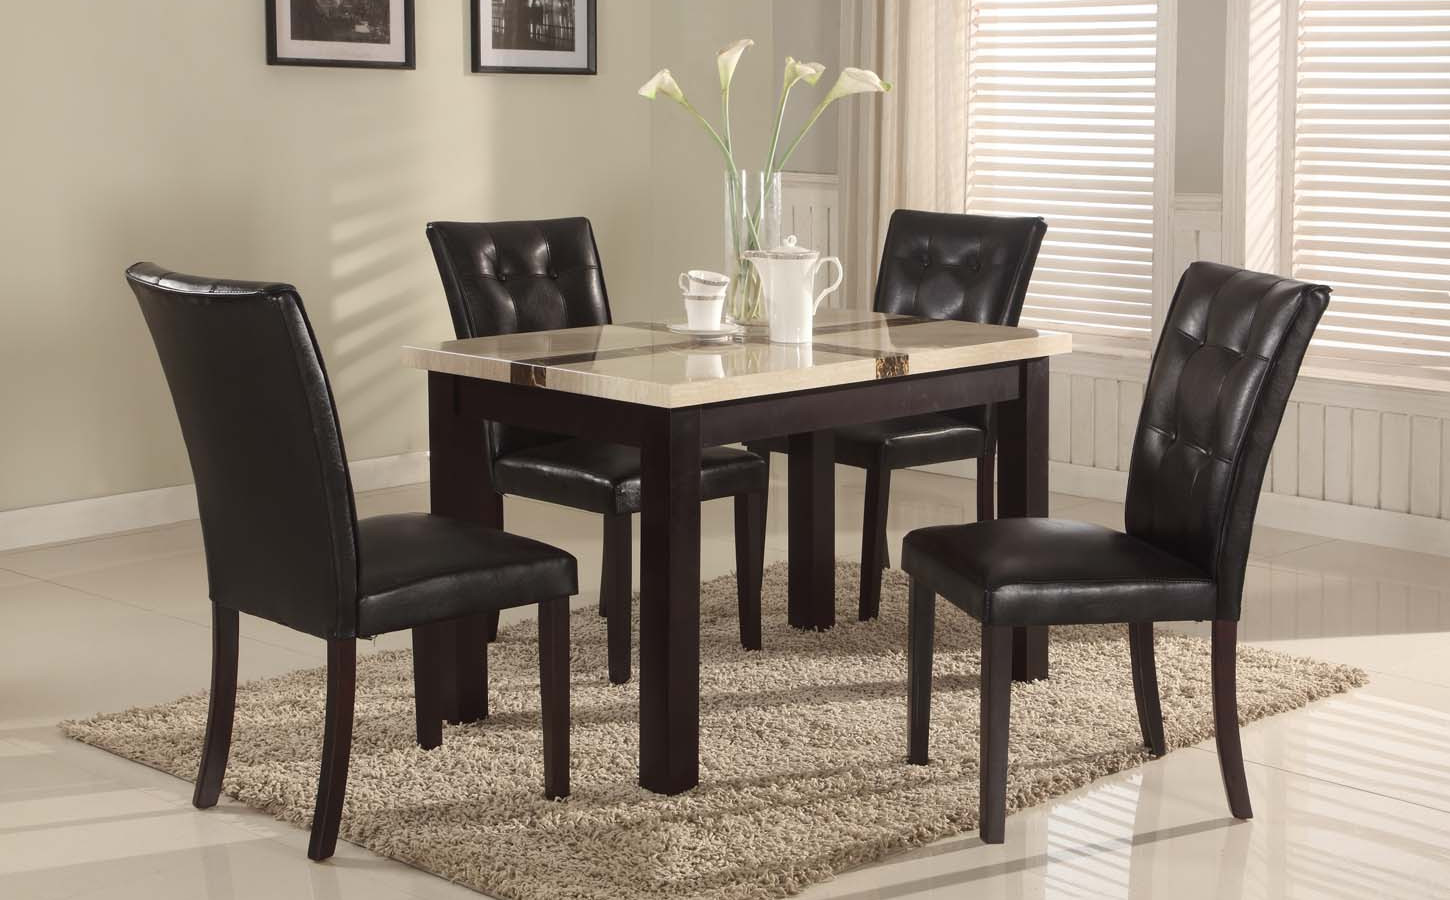 5 Pc Faux Marble Top Dinette Dinning Set , Dining Table 4 Chairs